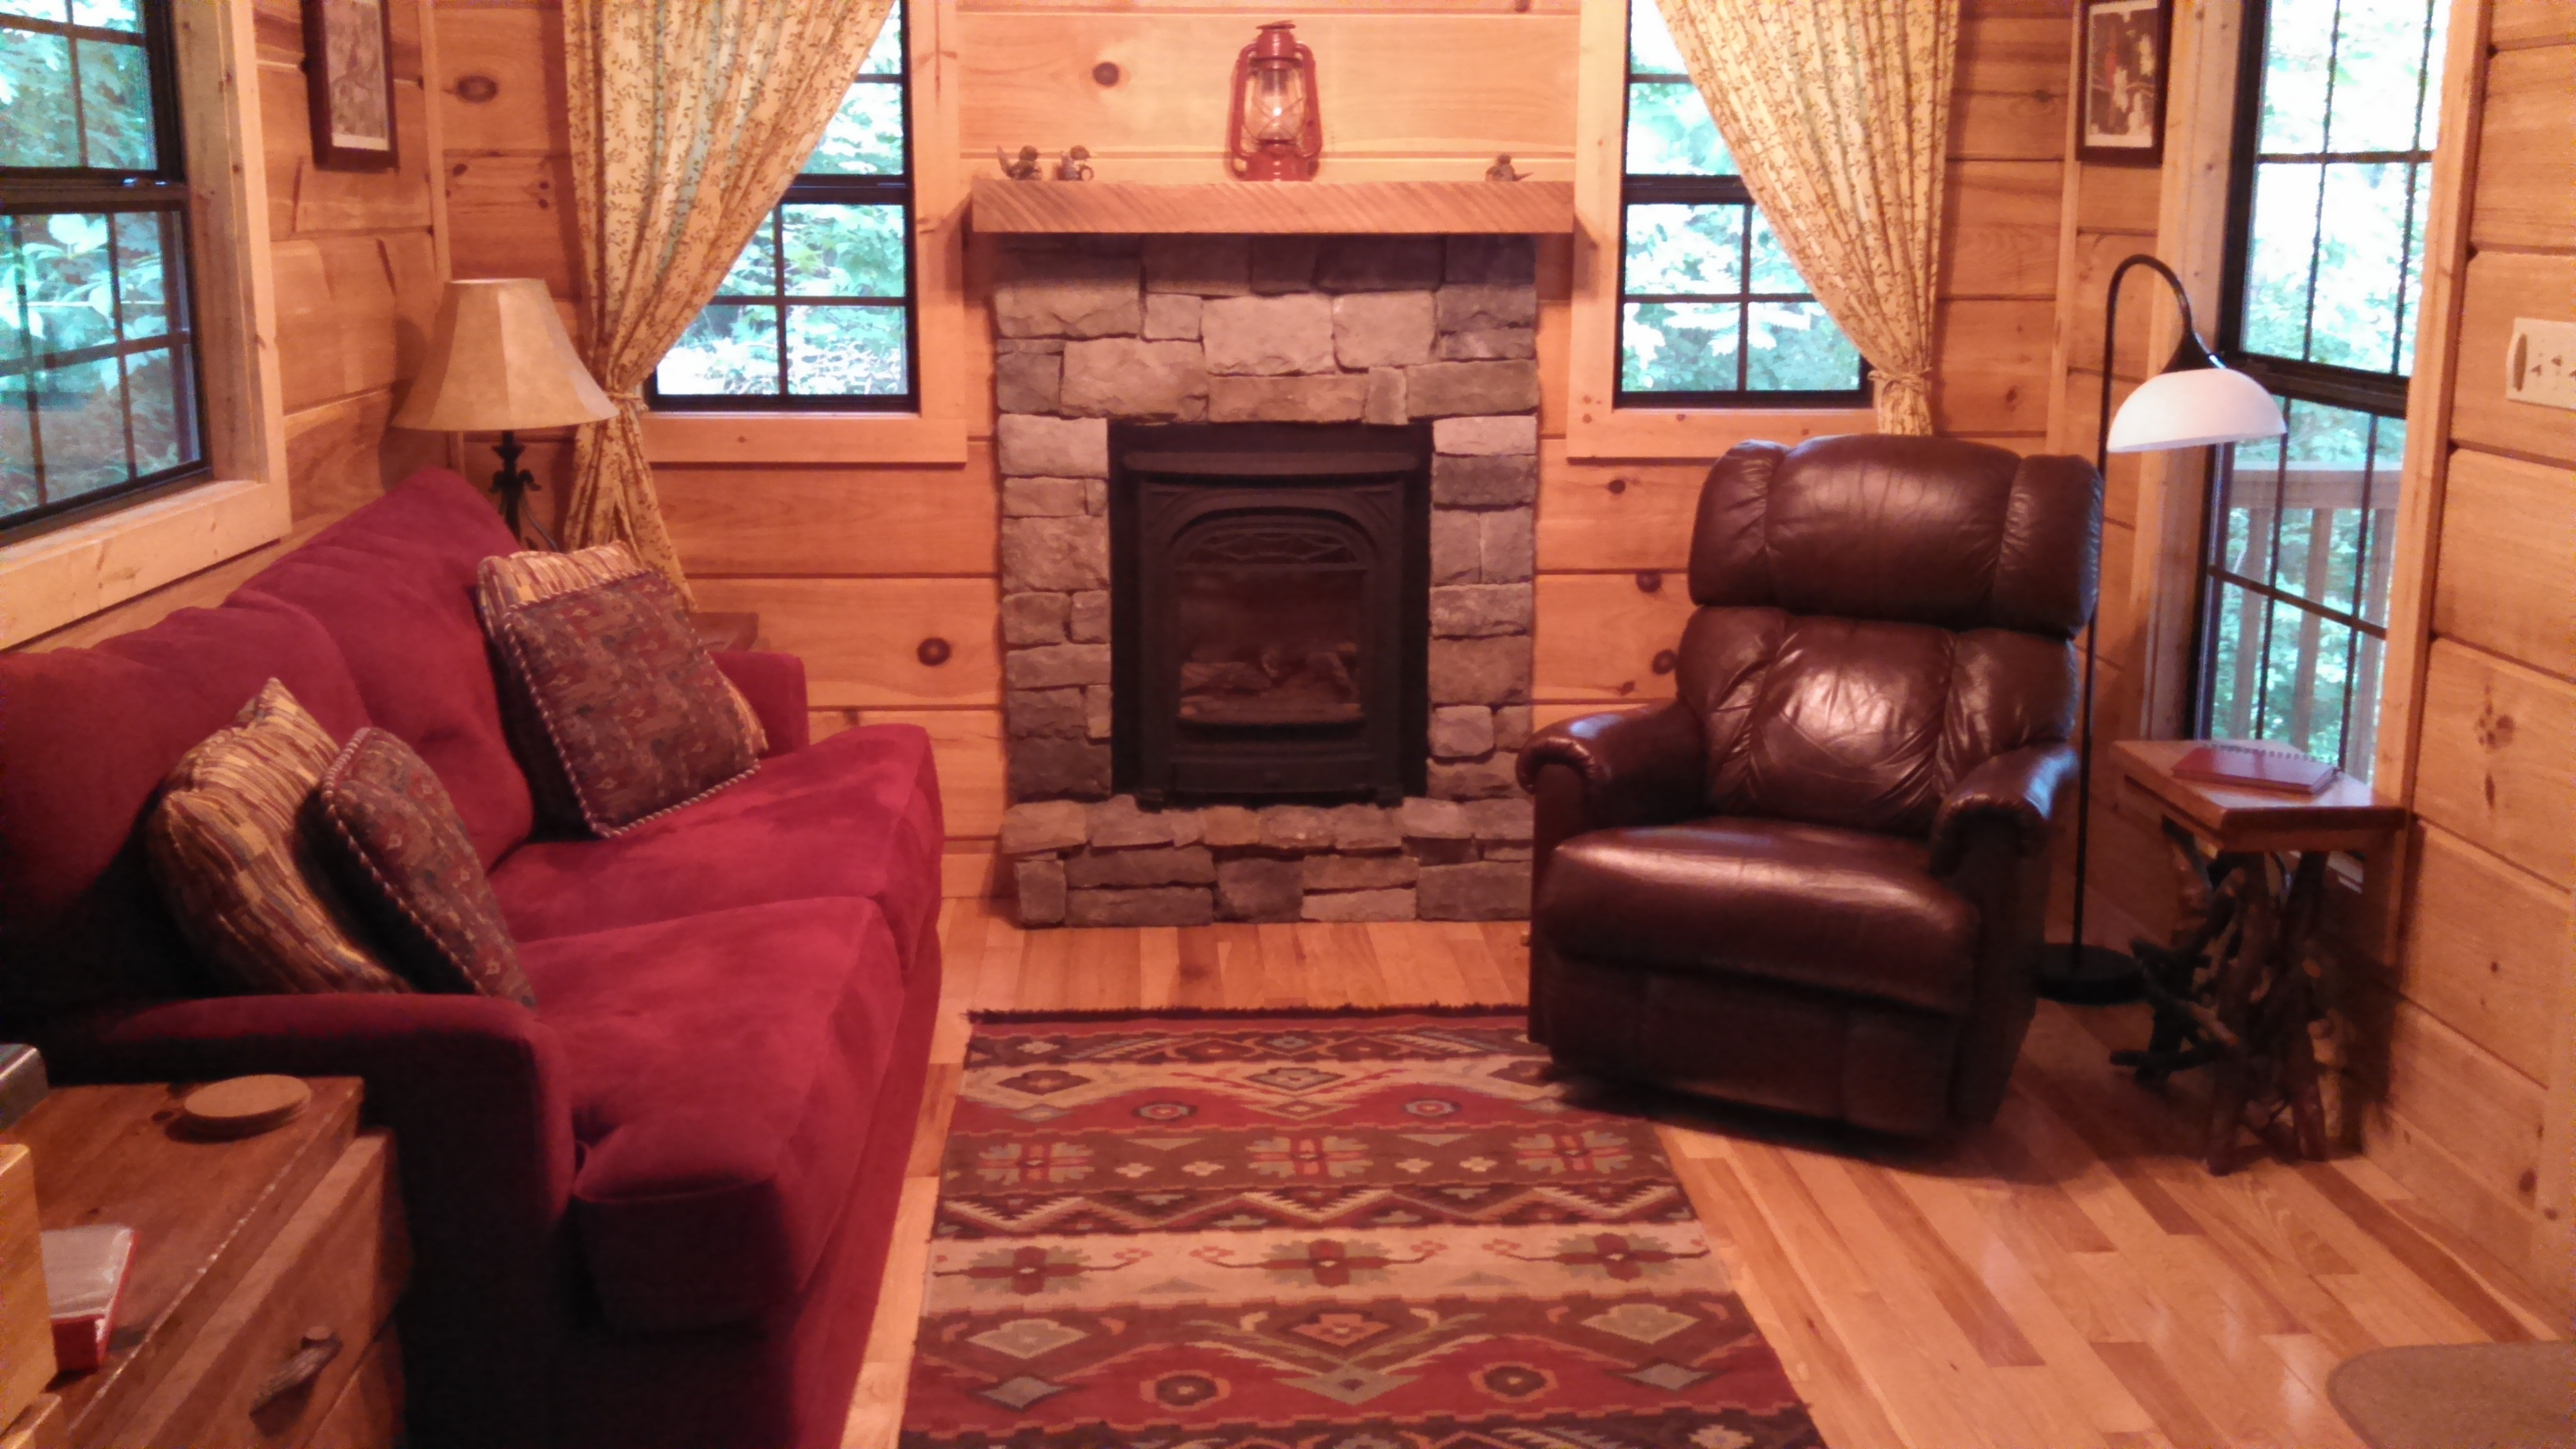 cabins map nc properymap rentals the mountain click accomodation springs ms cabin view to asheville resort cricket